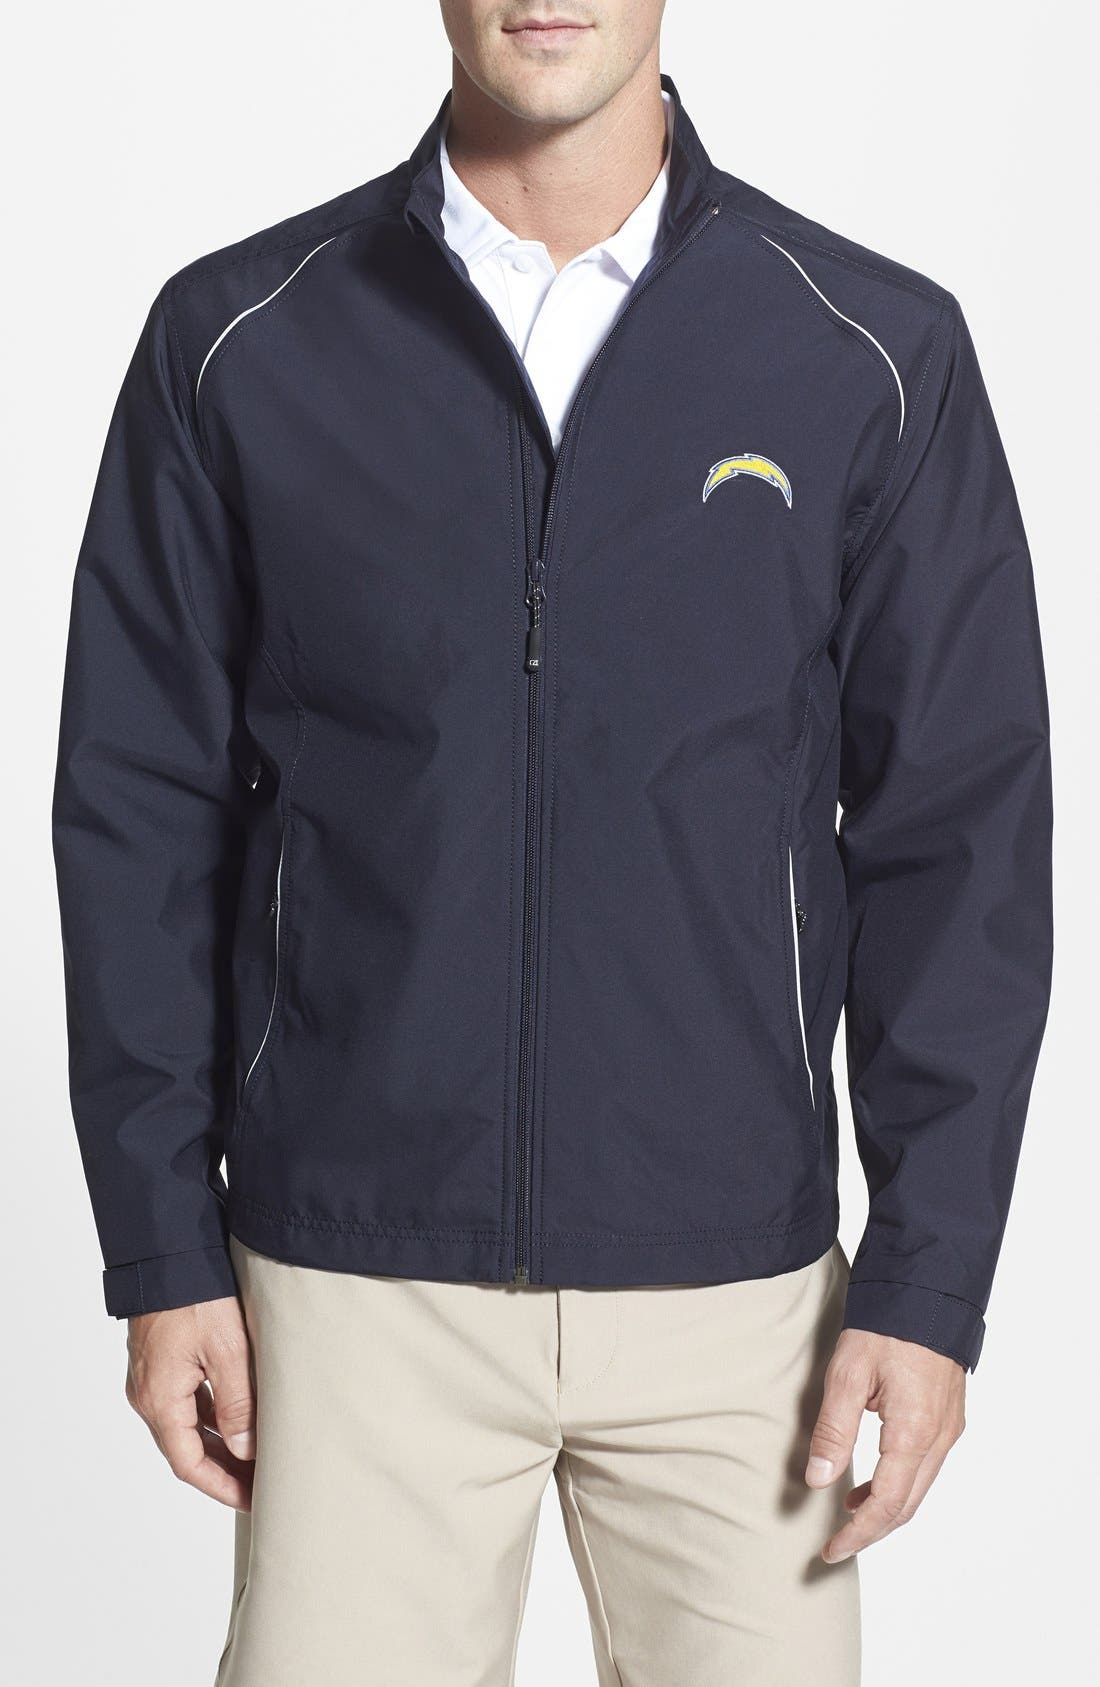 San Diego Chargers - Beacon WeatherTec Wind & Water Resistant Jacket,                         Main,                         color,